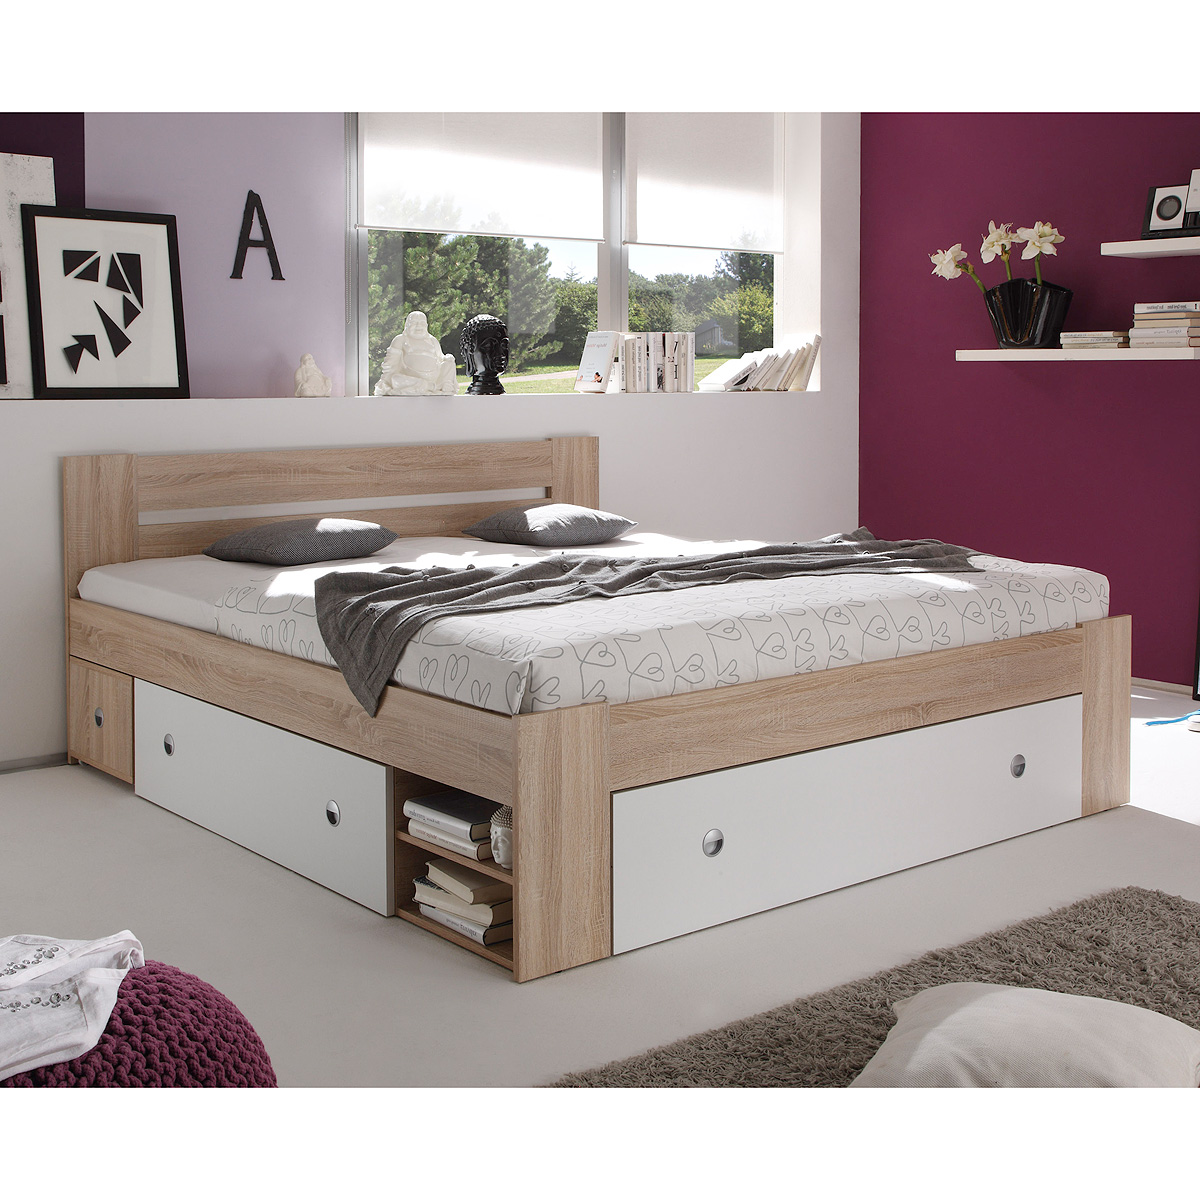 bett stefan funktionsbett schlafzimmerbett in sonoma eiche wei 140x200 ebay. Black Bedroom Furniture Sets. Home Design Ideas